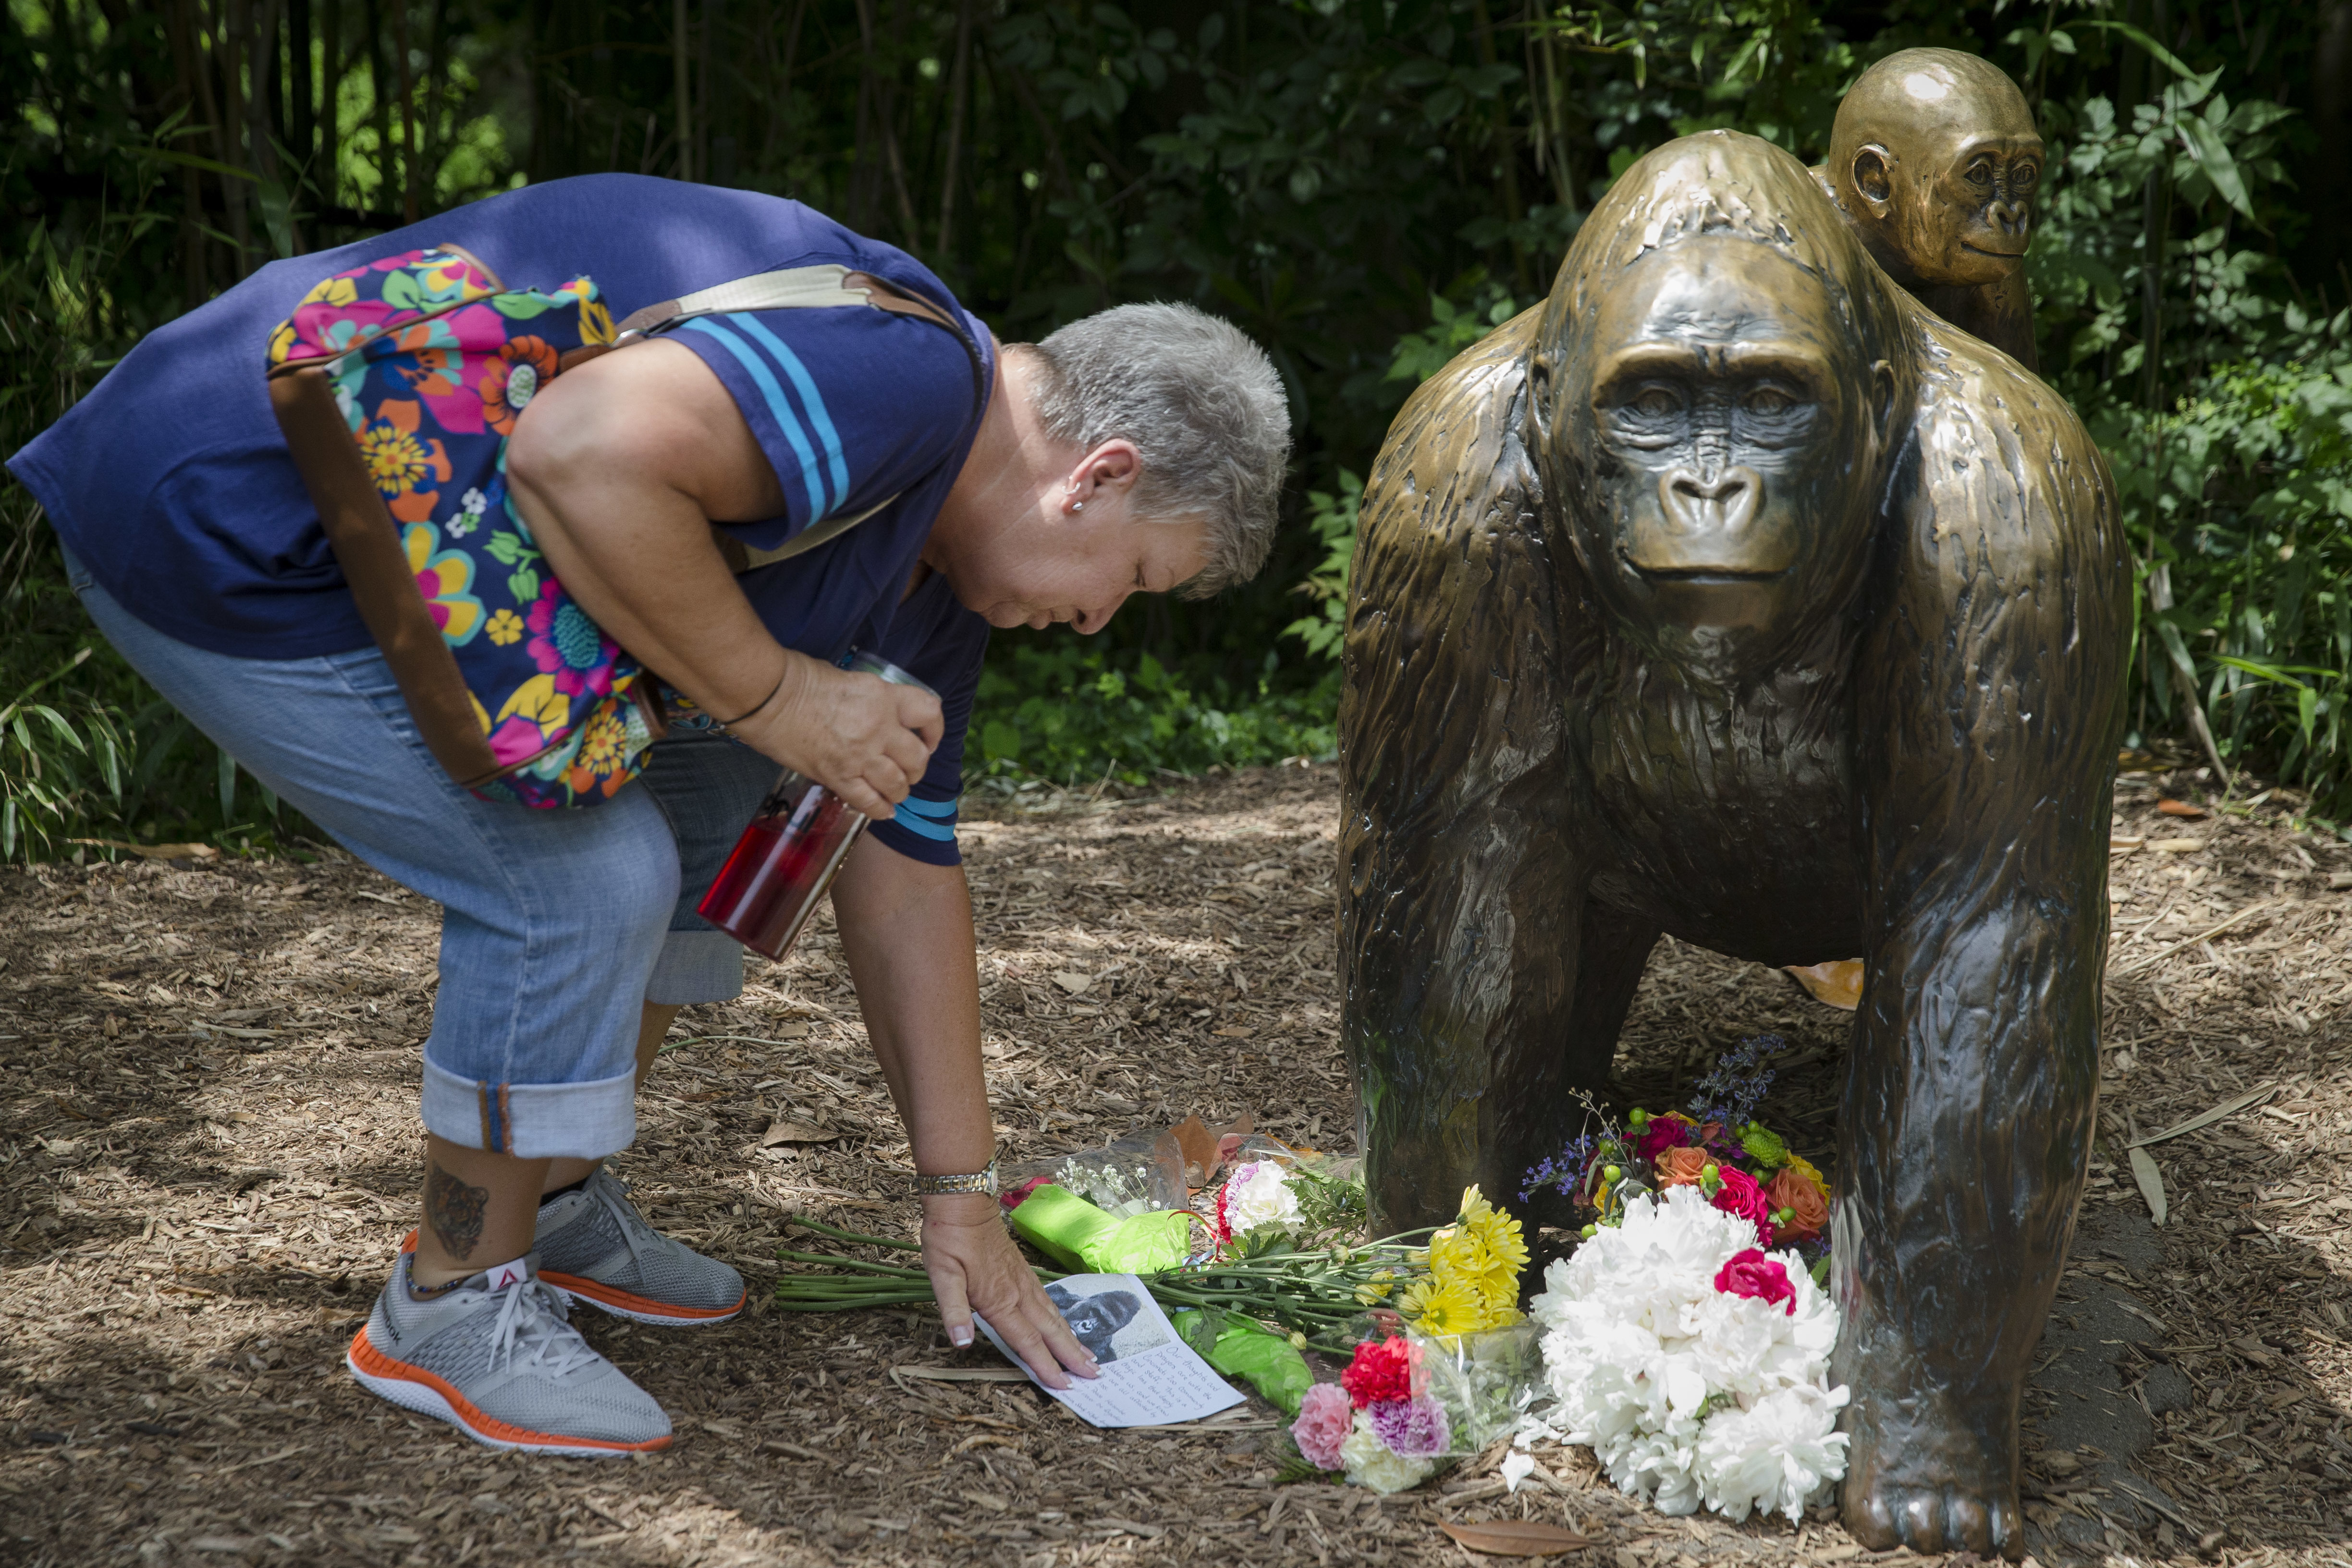 Mother of Child Who Fell Into Gorilla Pit Slams Critics: 'Accidents Happen'